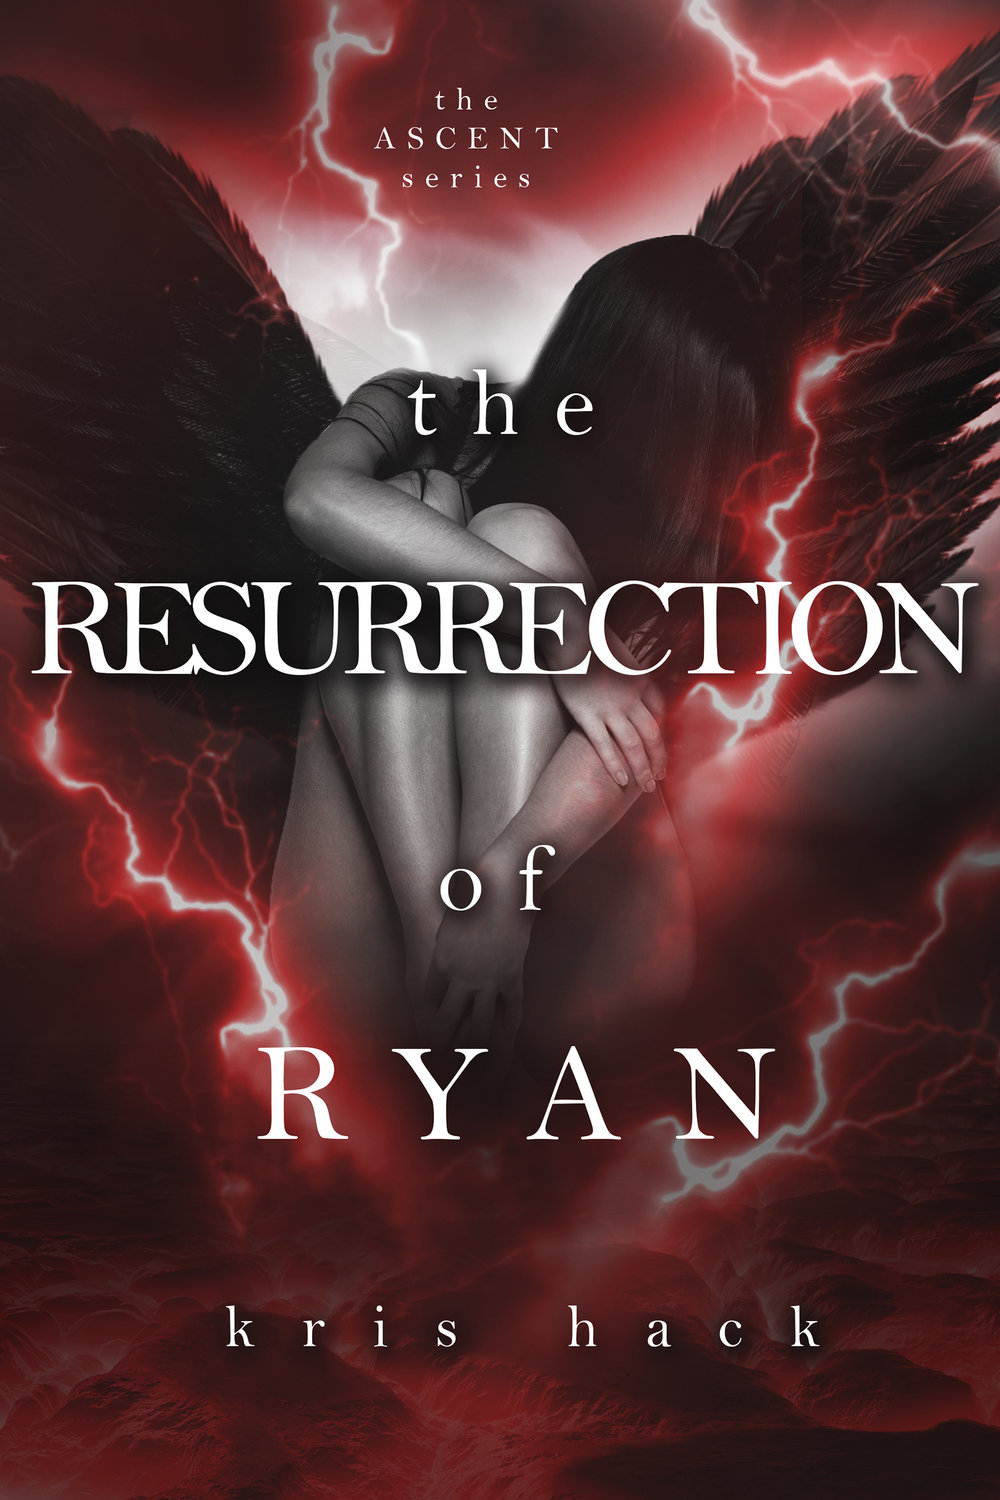 The Resurrection of Ryan - I thought I could continue to ignore the… talents my friends and the love of my life possess. I couldn't. It all became too much when we moved to the compound and they were able to use them freely. I wasn't able to handle it and now I'm on my own. The gate to Hell has been opened and demons have invaded the earth. Luckily, the portal to the underworld is small and considering the population, few have stepped foot on earth's soil. The demons are after what I have but I can't let them take him. He's all I have left.Ryan is gone. She left me. Said it was too much. She couldn't handle all of the strange things or the nightly battles against the demons. She needed out and I let her go. Or so she thinks. I sent my best man to keep an eye on her and keep her safe. She holds the very thing I love most and I won't let the demons have them. I would fight the Devil himself to keep her in my arms and I am determined to win.